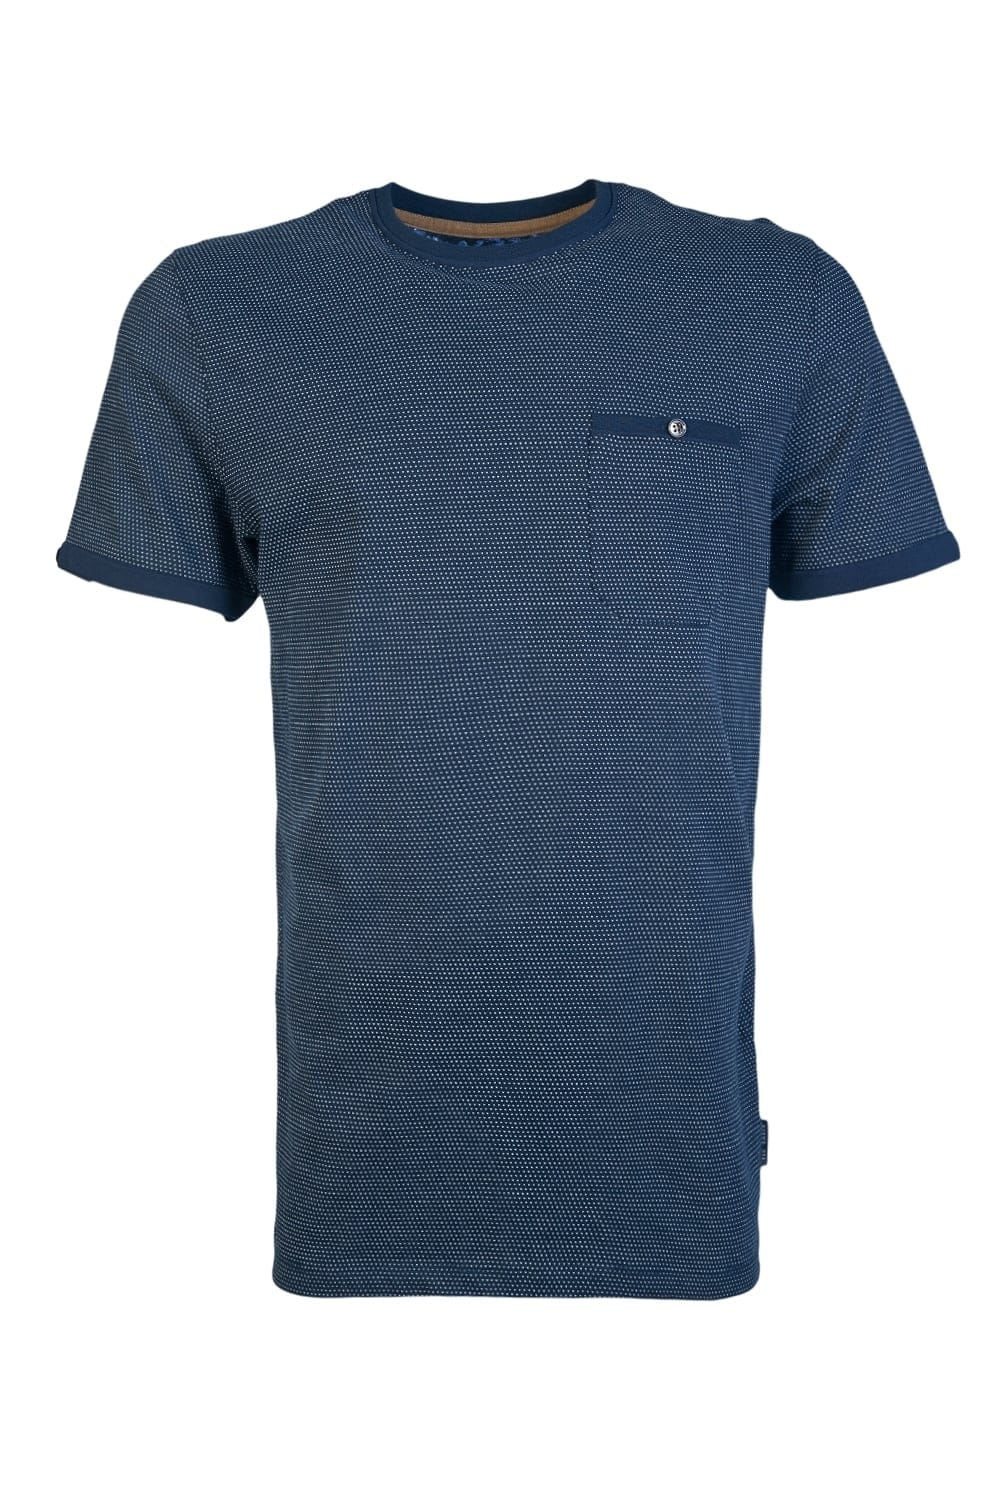 Ted baker t shirt ta6m gb14 cress 10 clothing from sage for Ted baker shirts sale online